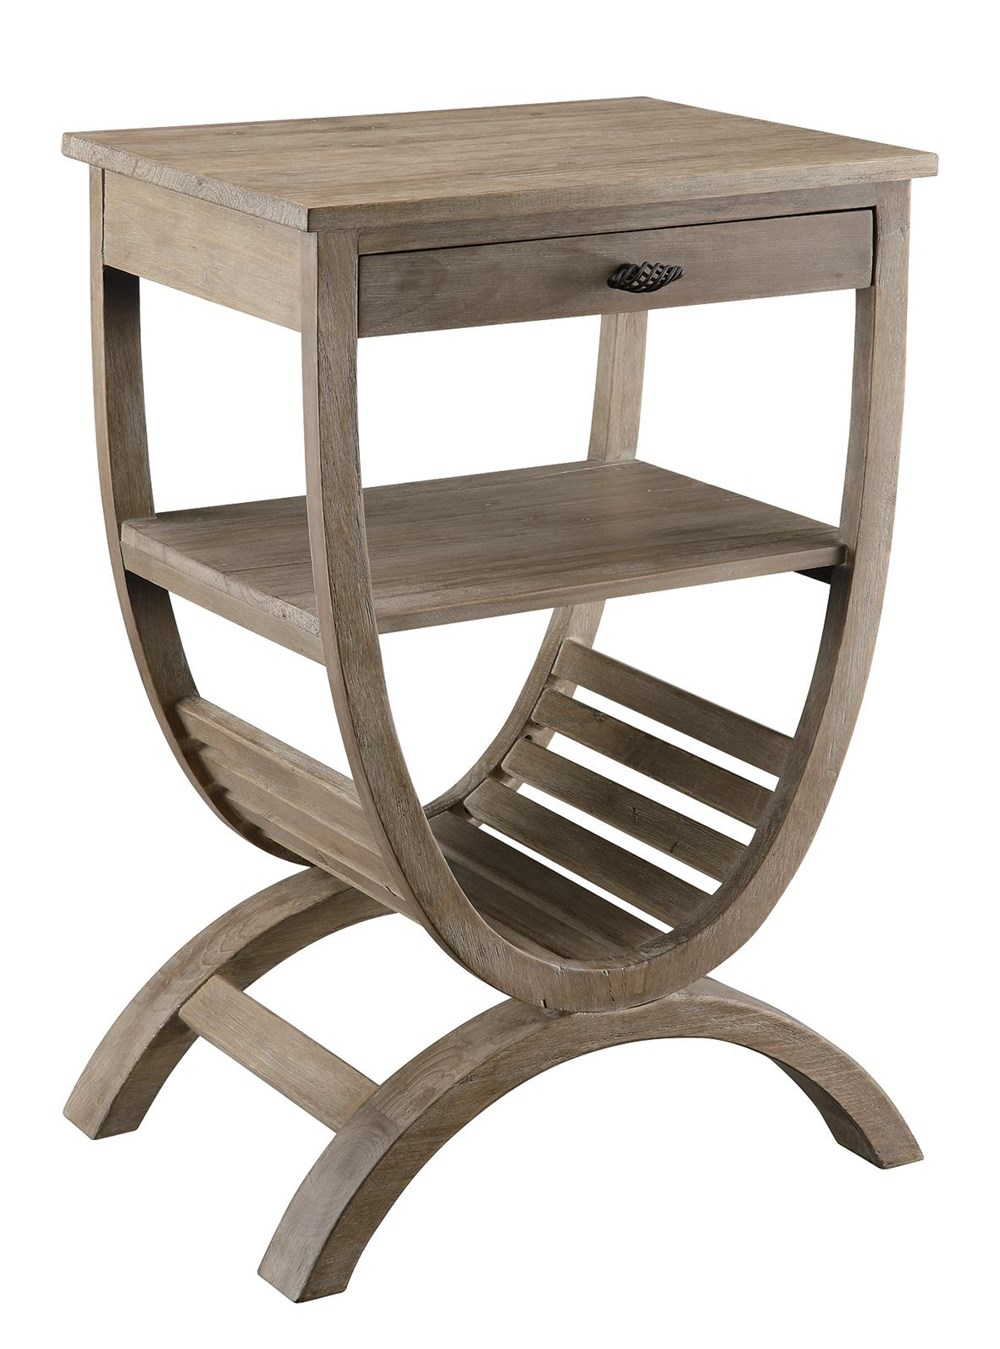 blondelle accent table crestview collection sylvan furniture bengal manor mango wood twist modern side lamp pub height kitchen wicker indoor iron nesting tables small foyer pier